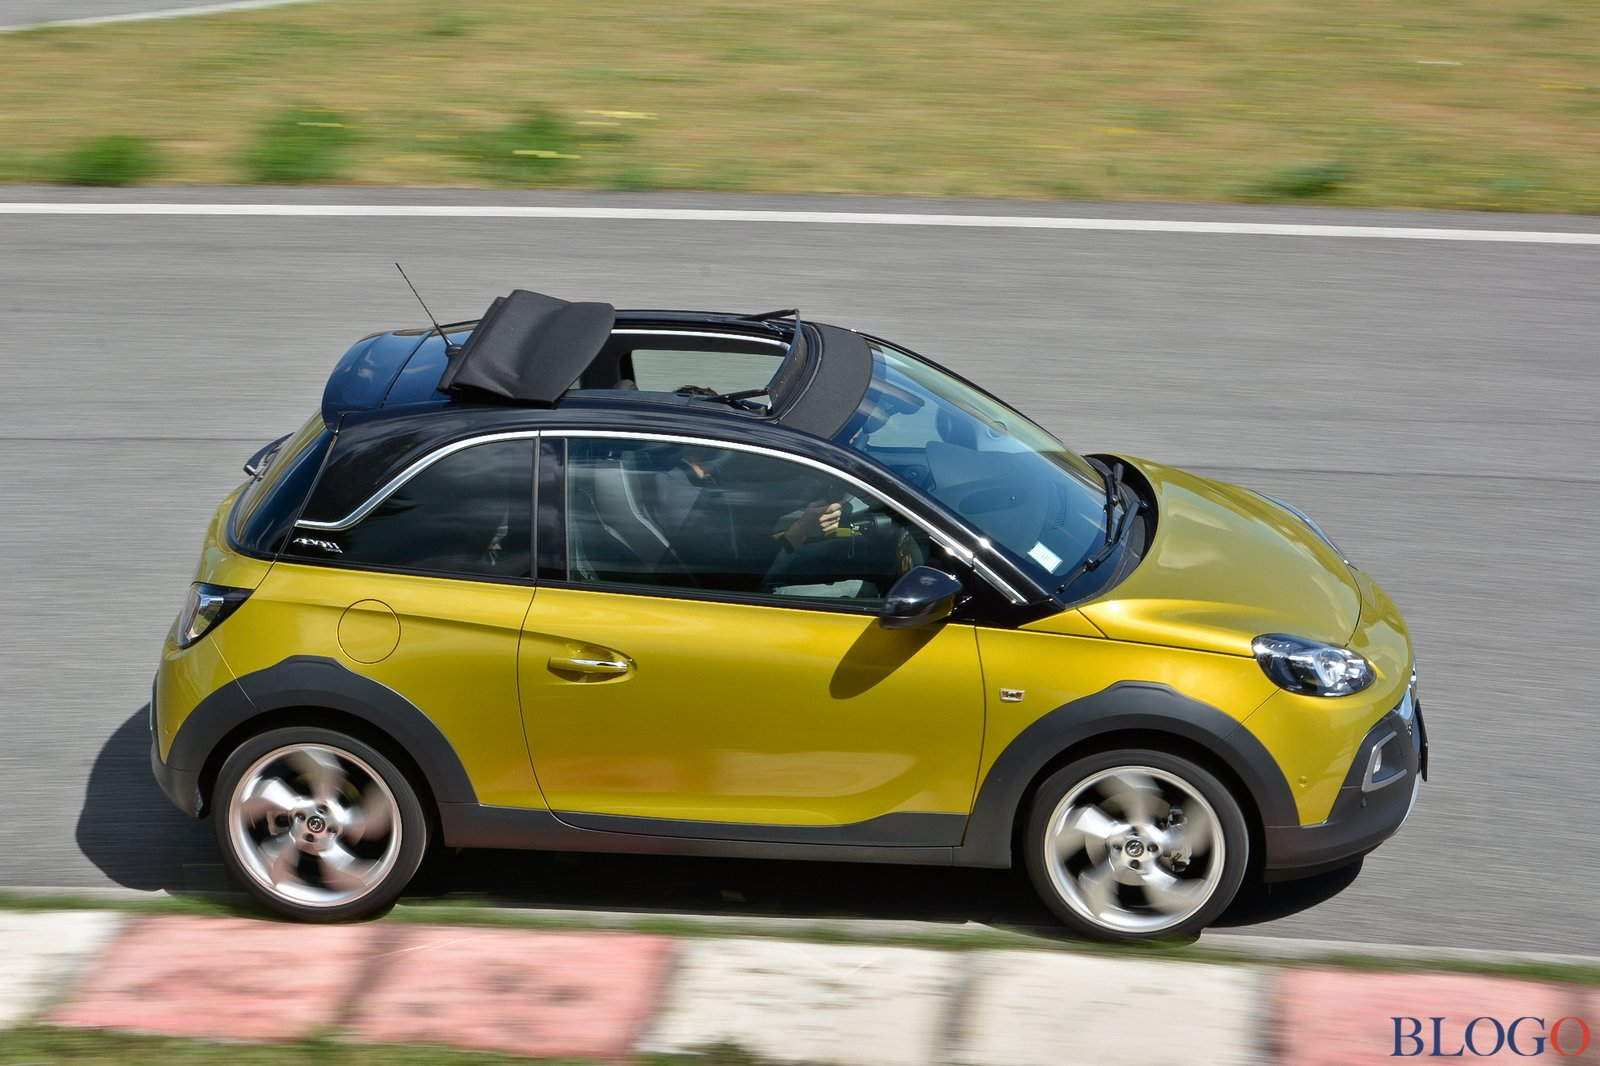 opel adam rocks air 1 0 sge prova su strada. Black Bedroom Furniture Sets. Home Design Ideas